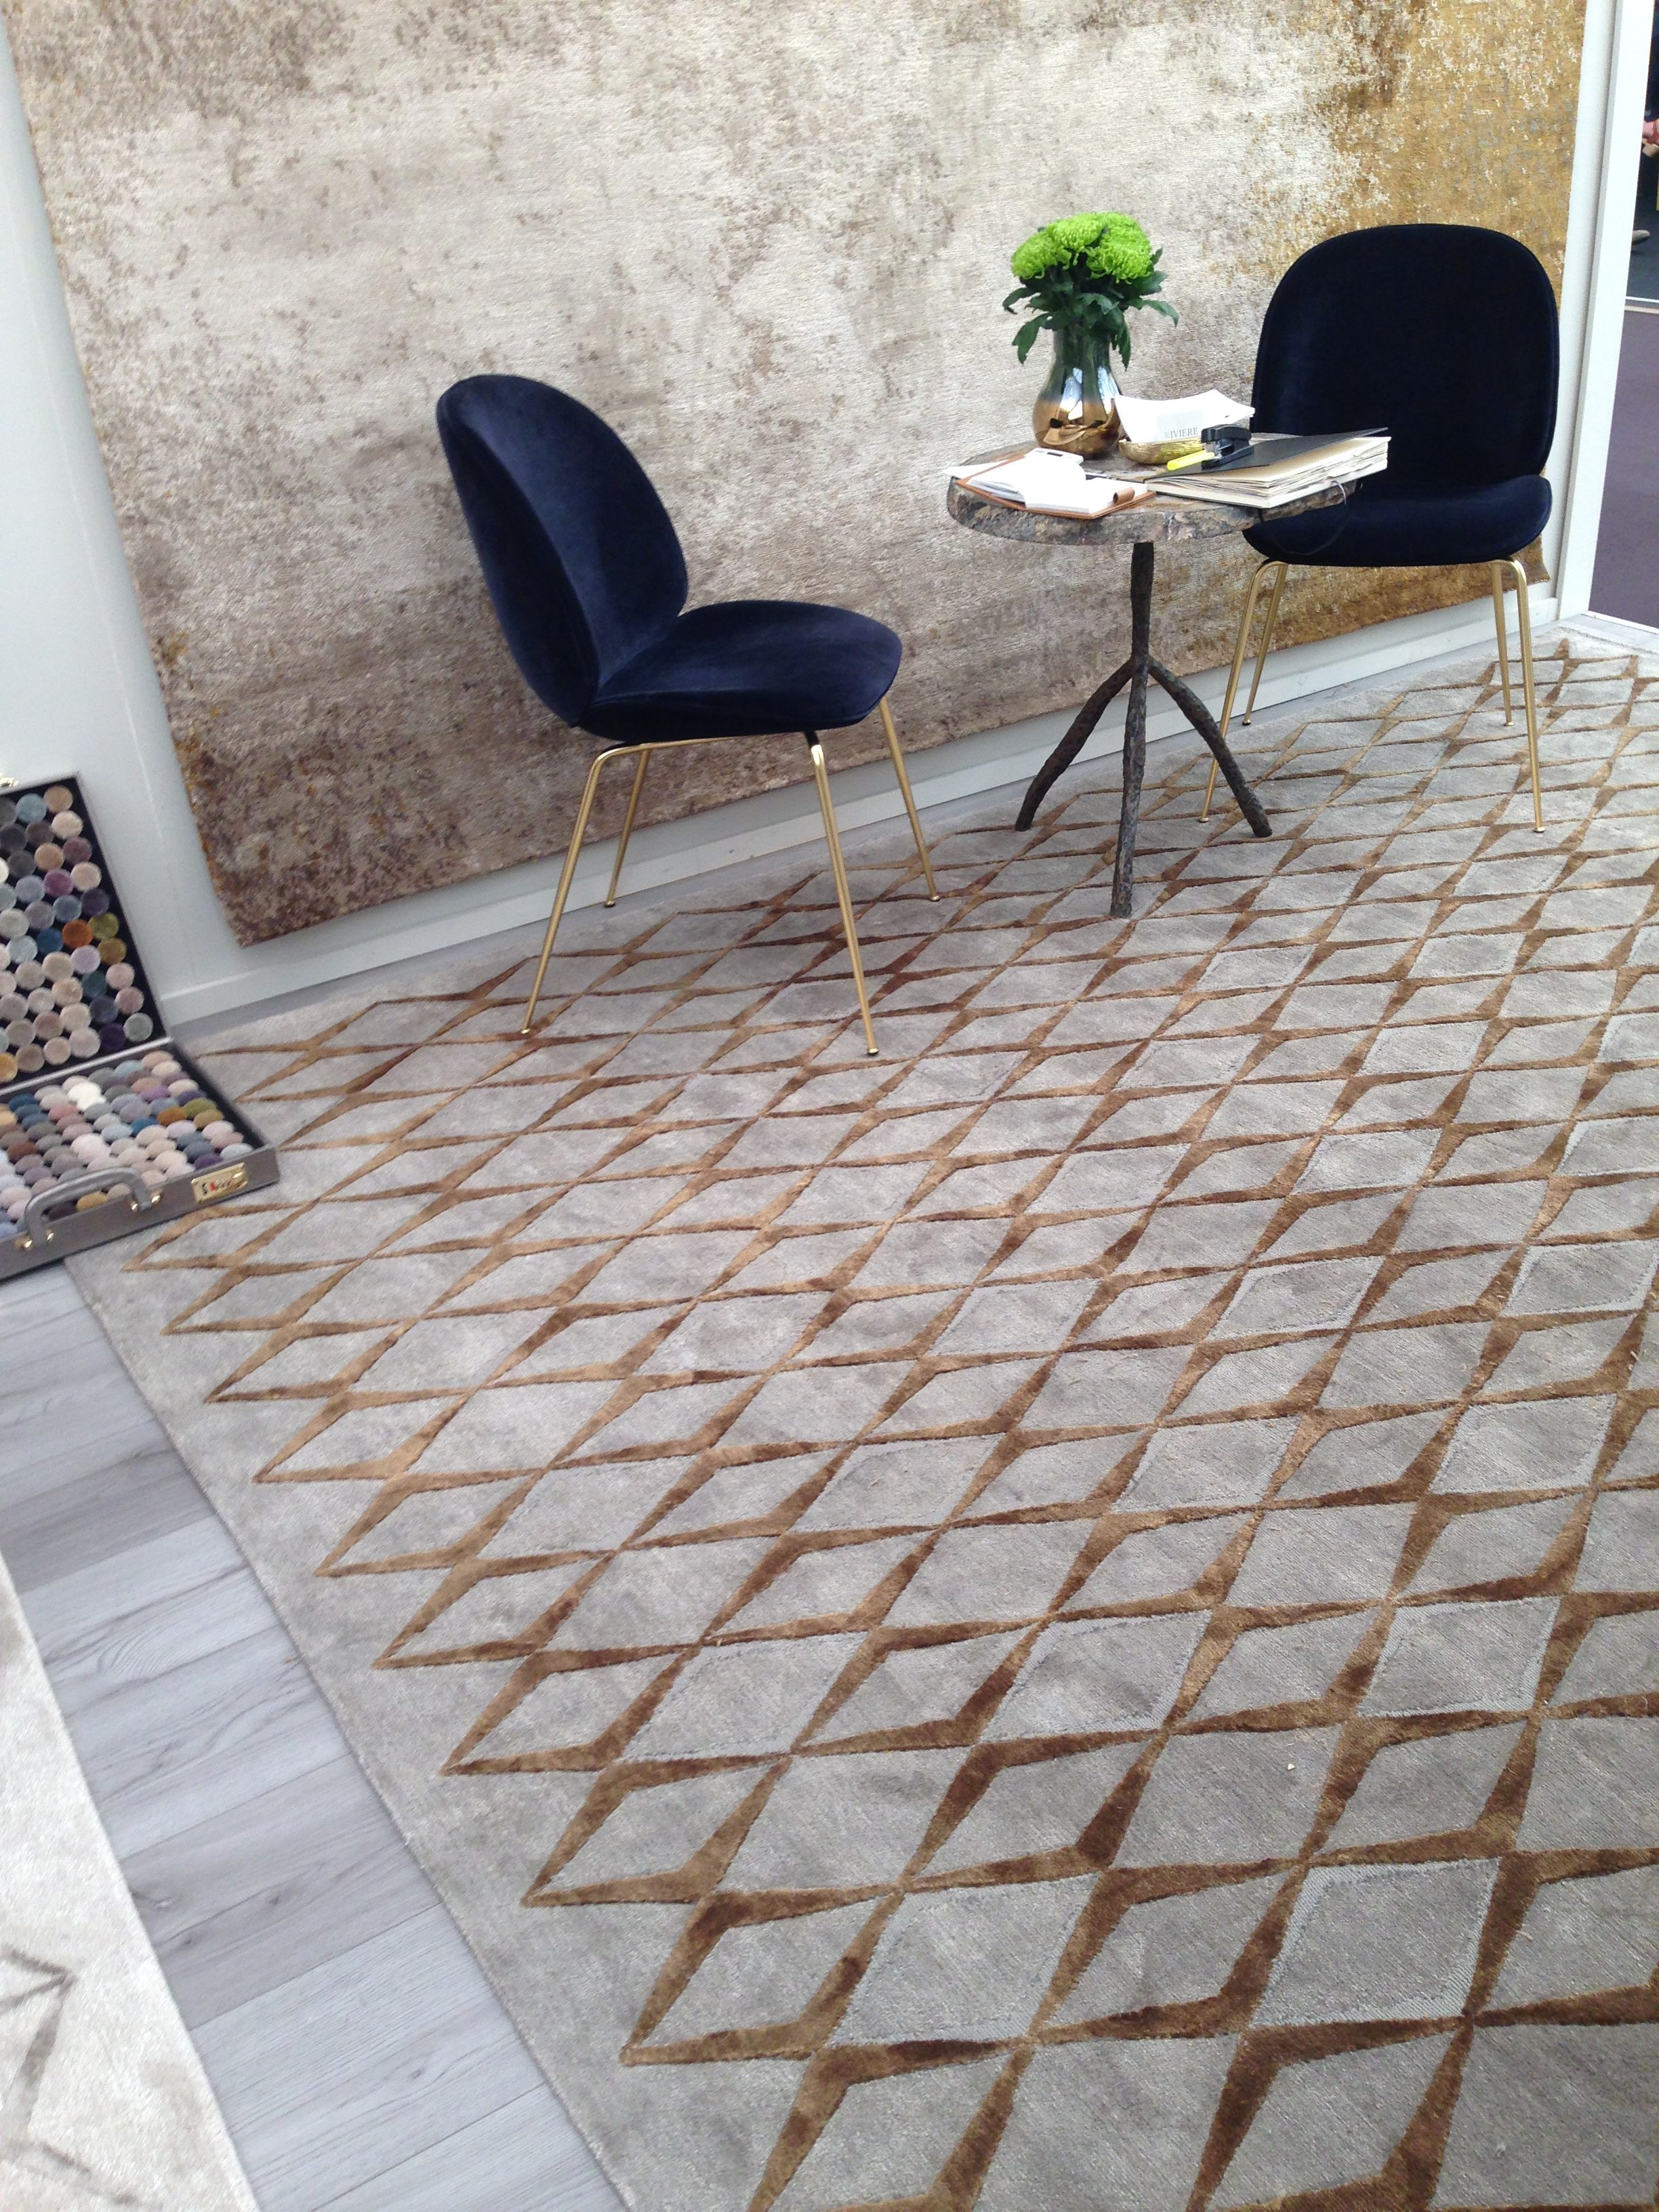 Three Interiors Interior Design Cheshire Rug design